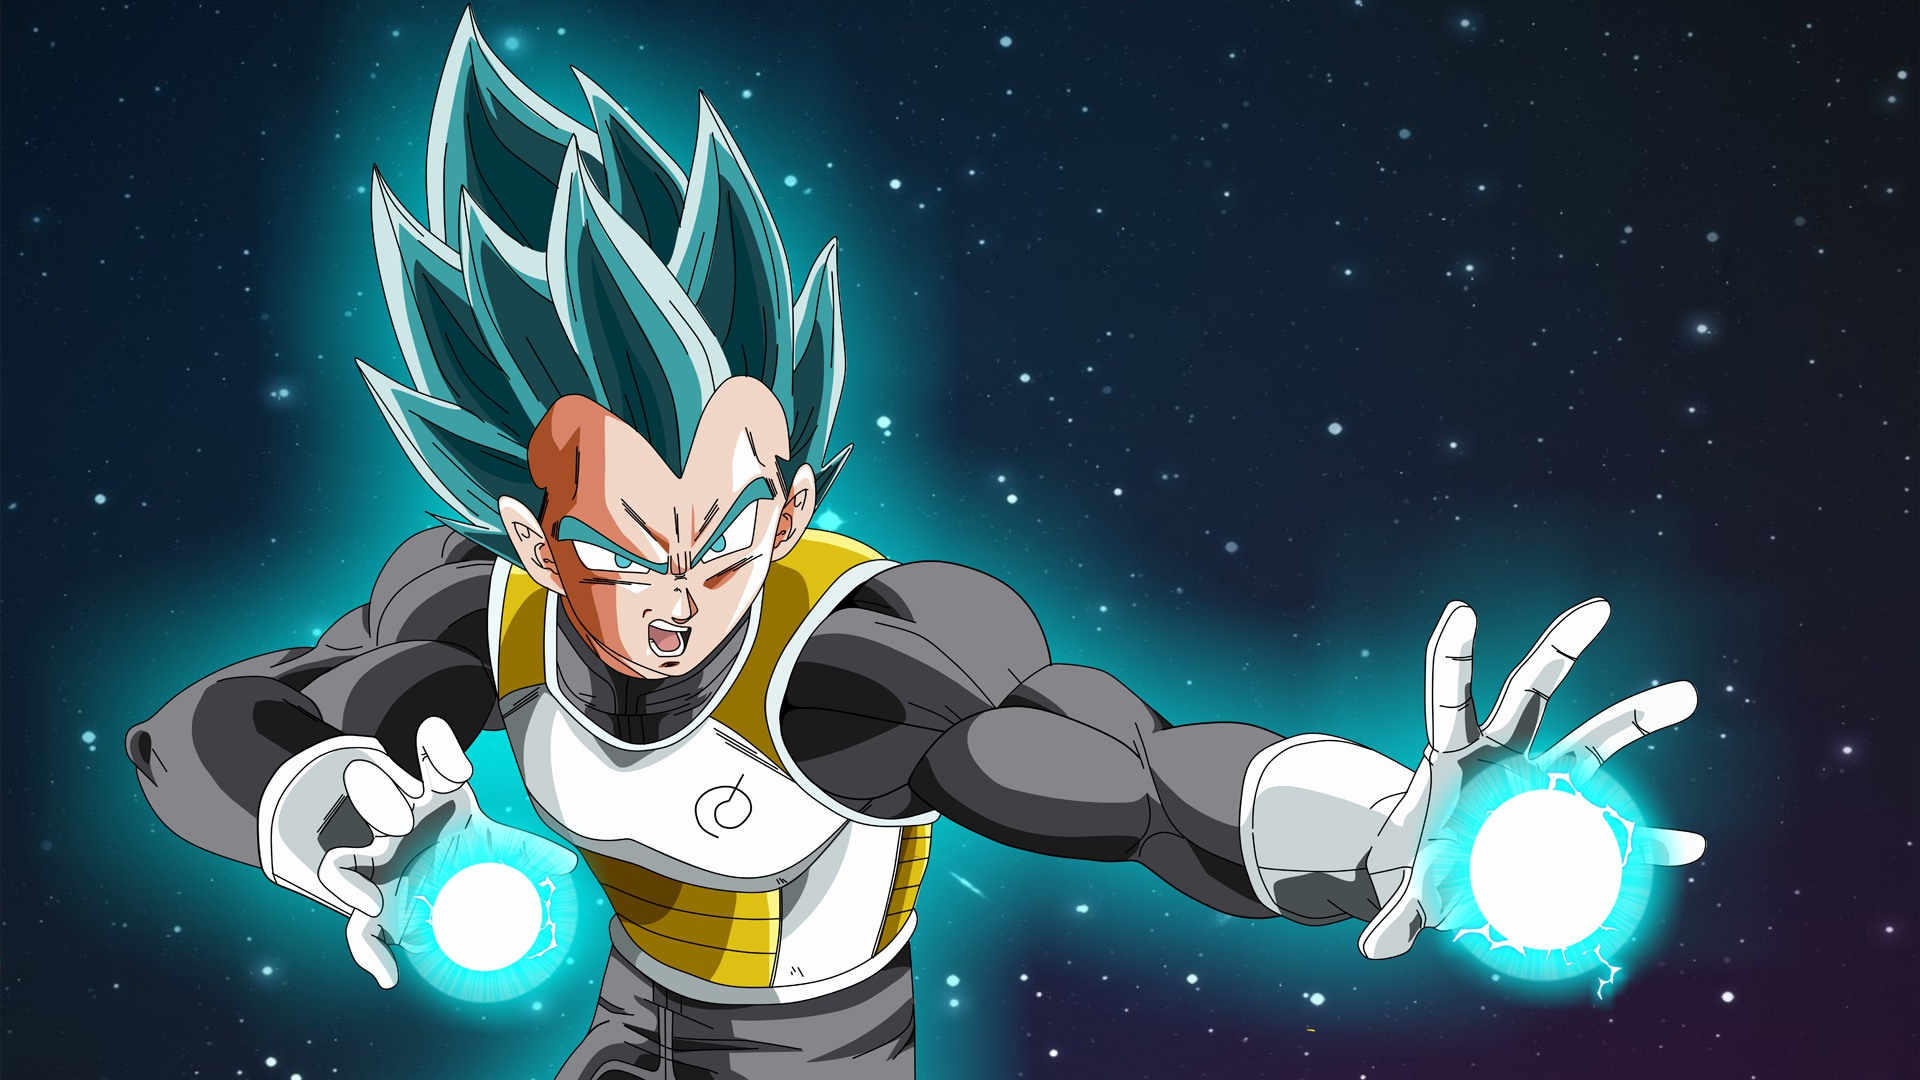 Vegeta super saiyan blue full hd fond d 39 cran and arri re for Super fond ecran